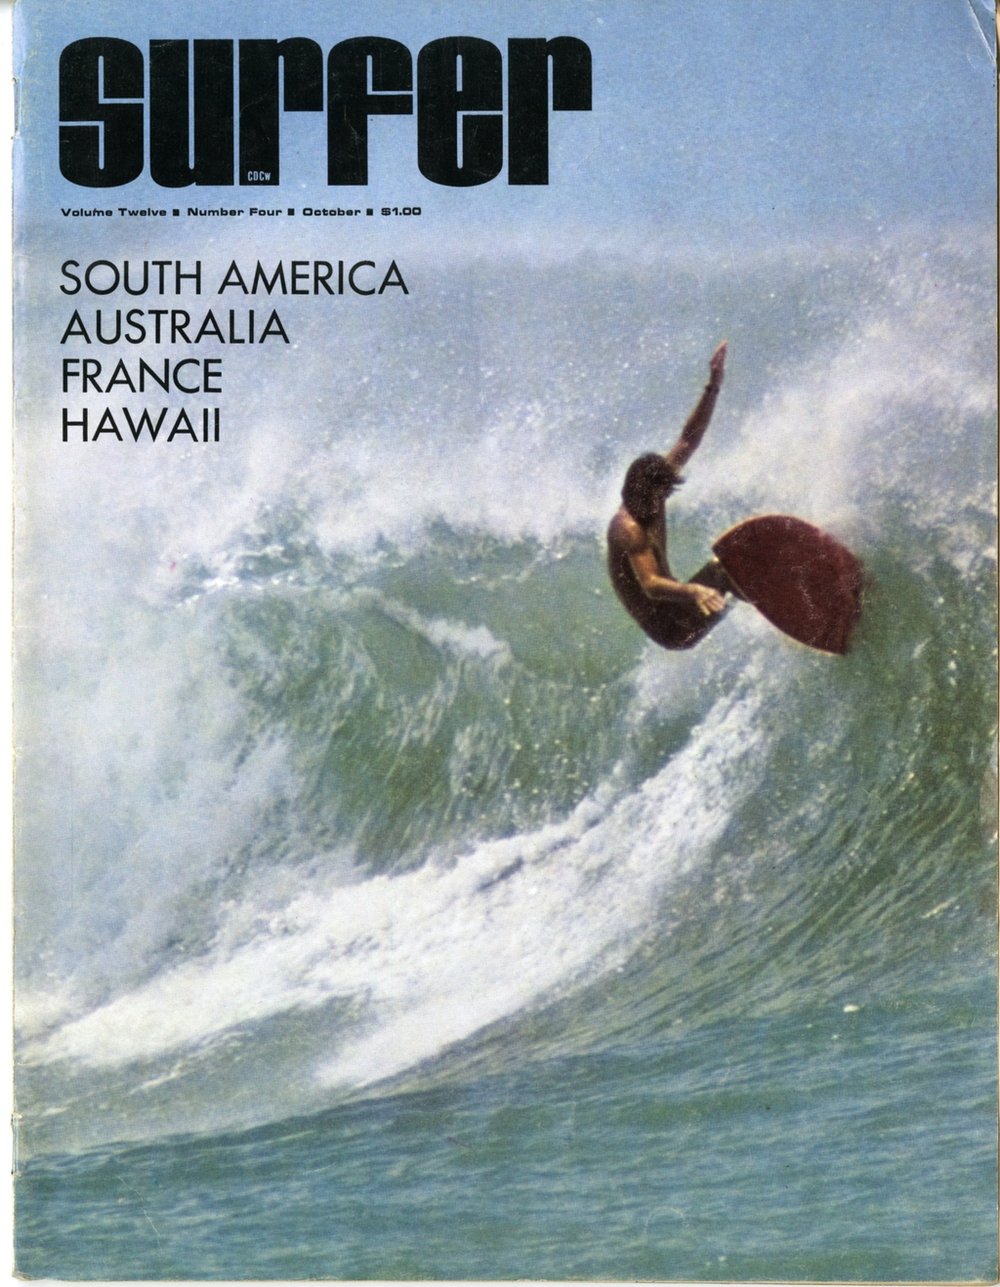 First cover shot, Ala Moana | p. John Severson | 1971